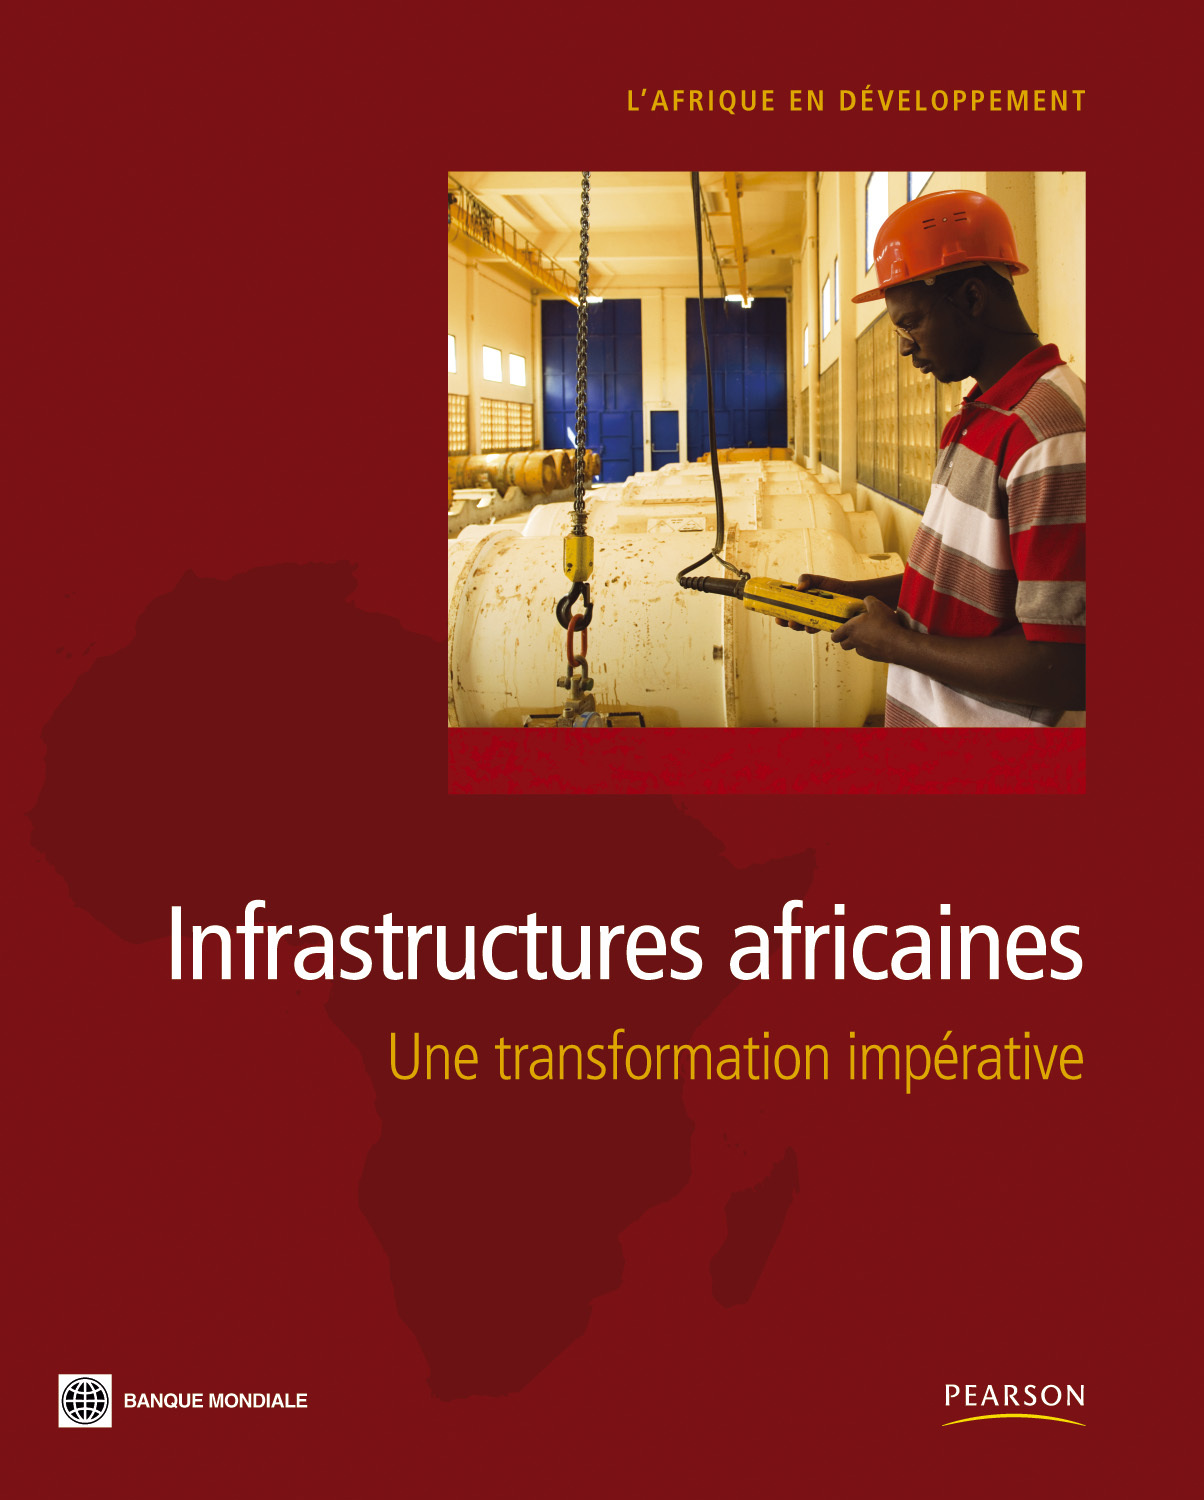 INFRASTRUCTURES AFRICAINES UNE TRANSFORMATION IMPERATIVE